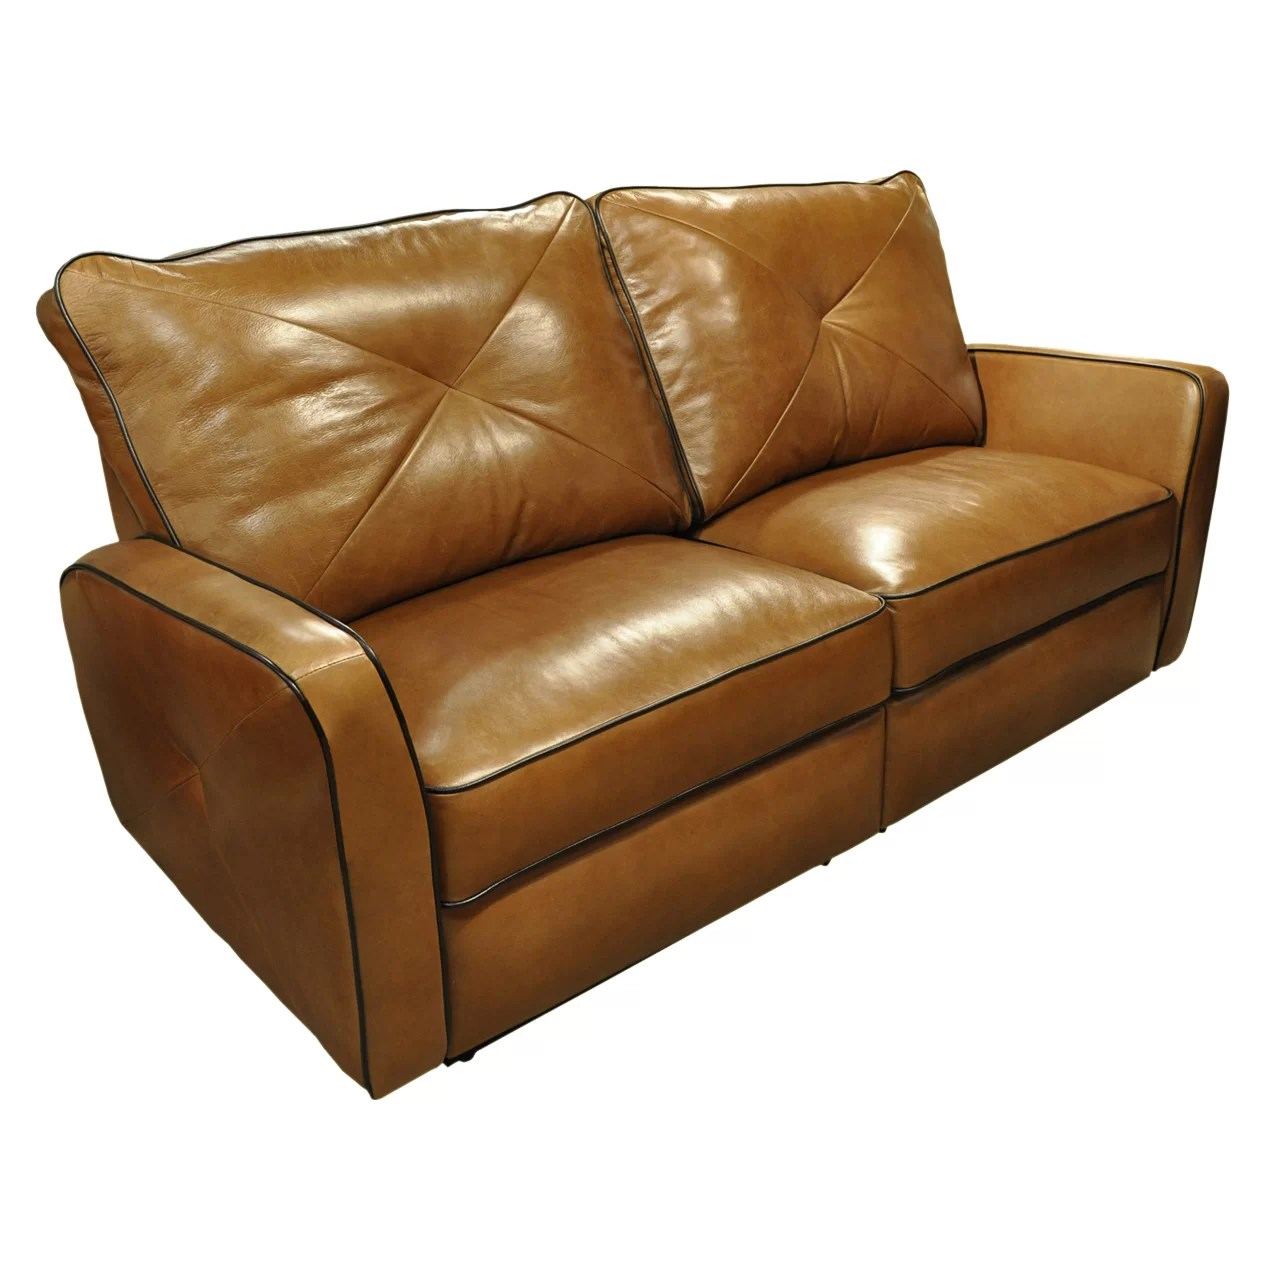 Leather Loveseat Omnia Leather Bahama Leather Reclining Loveseat And Reviews